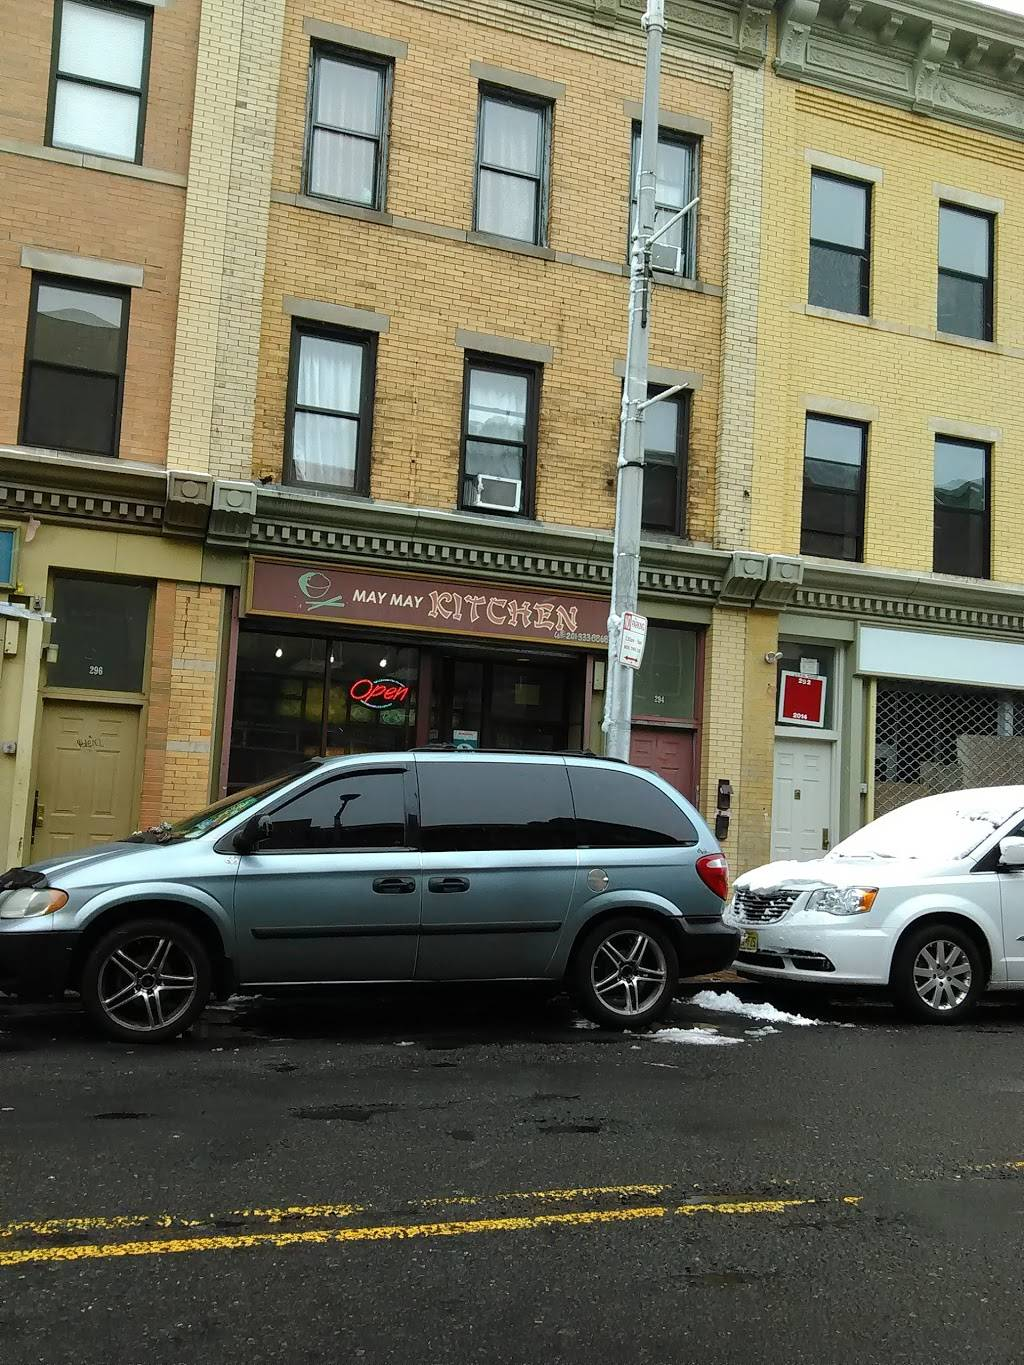 May May Kitchen   restaurant   294 Martin Luther King Dr, Jersey City, NJ 07305, USA   2013338868 OR +1 201-333-8868